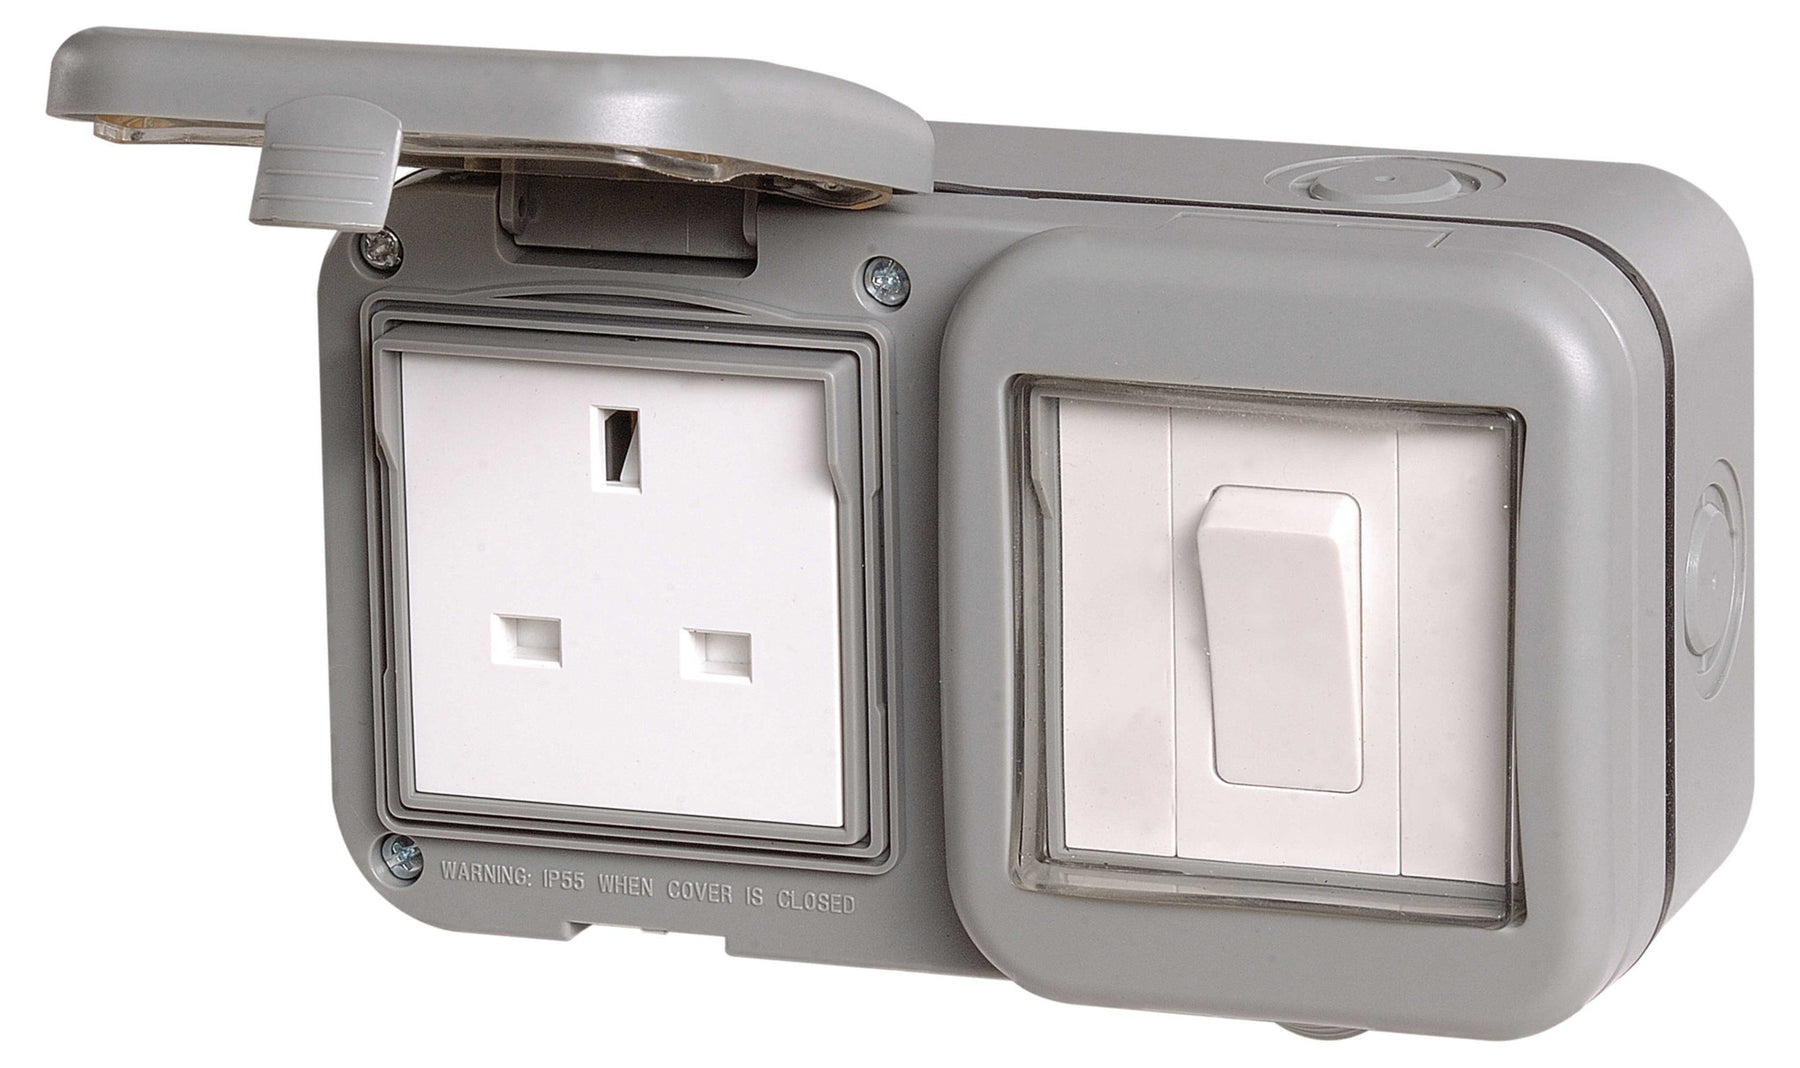 BG Nexus Storm WPB21 Weatherproof IP55 13A 1 Gang UK Socket With 1 Gang Switch - BG - sparks-warehouse